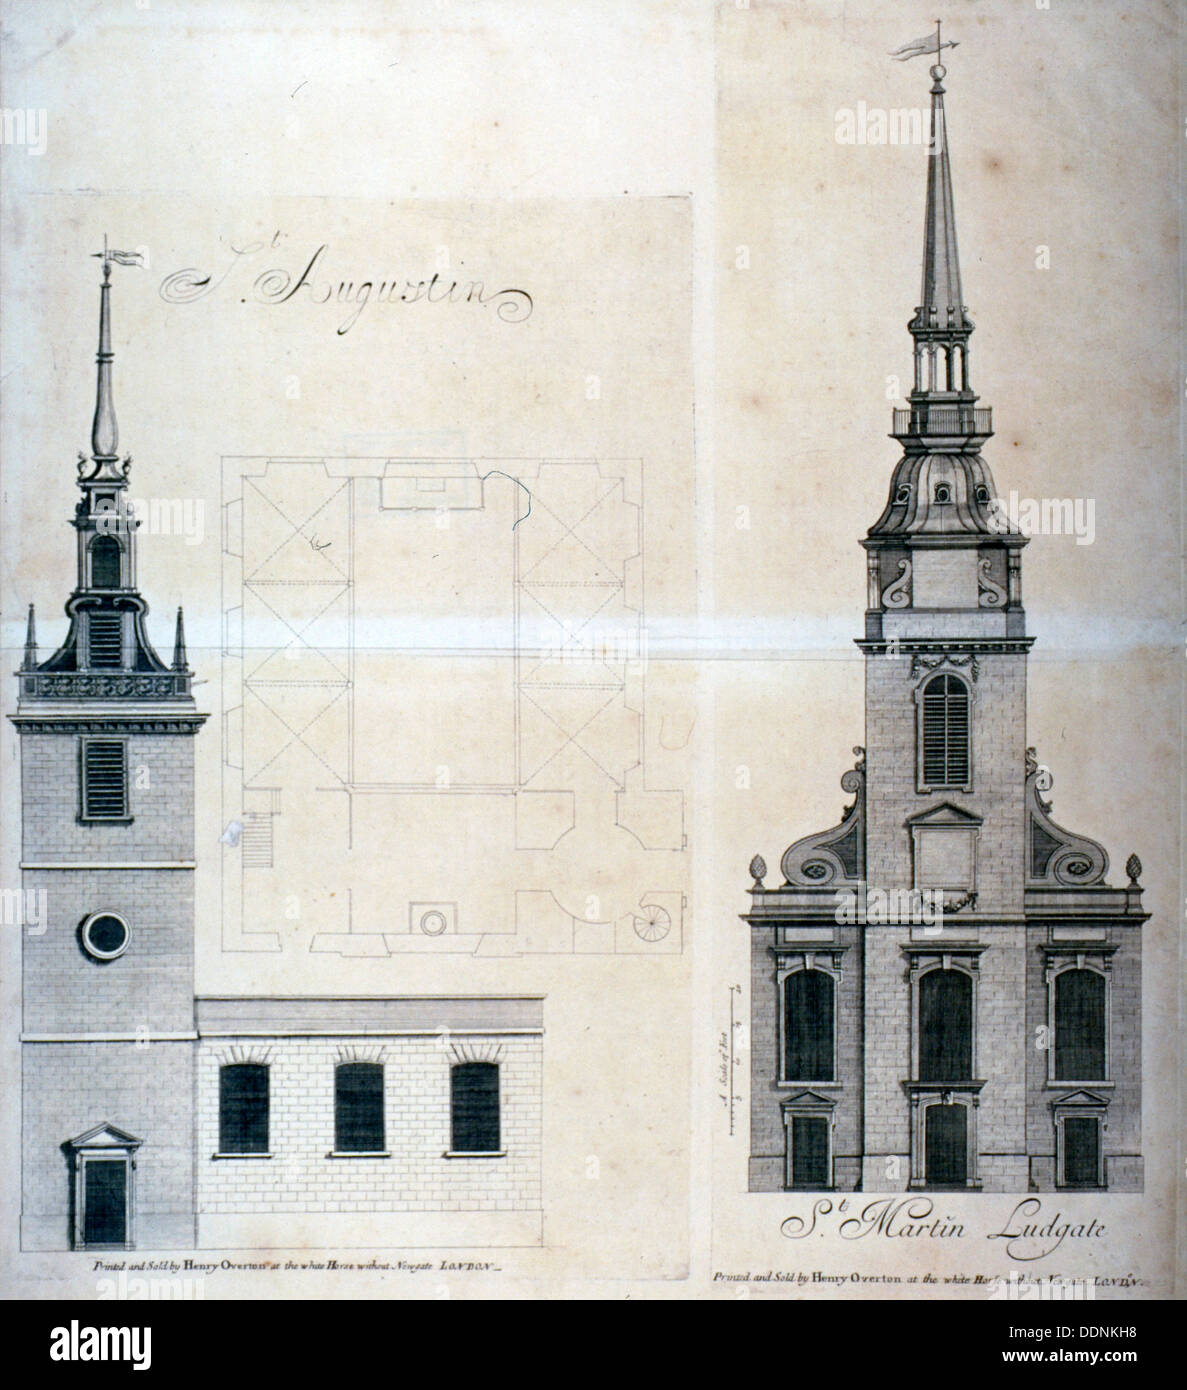 Elevation and plan of St Augustine, Watling Street, City of London, 1740.             Artist: Anon - Stock Image